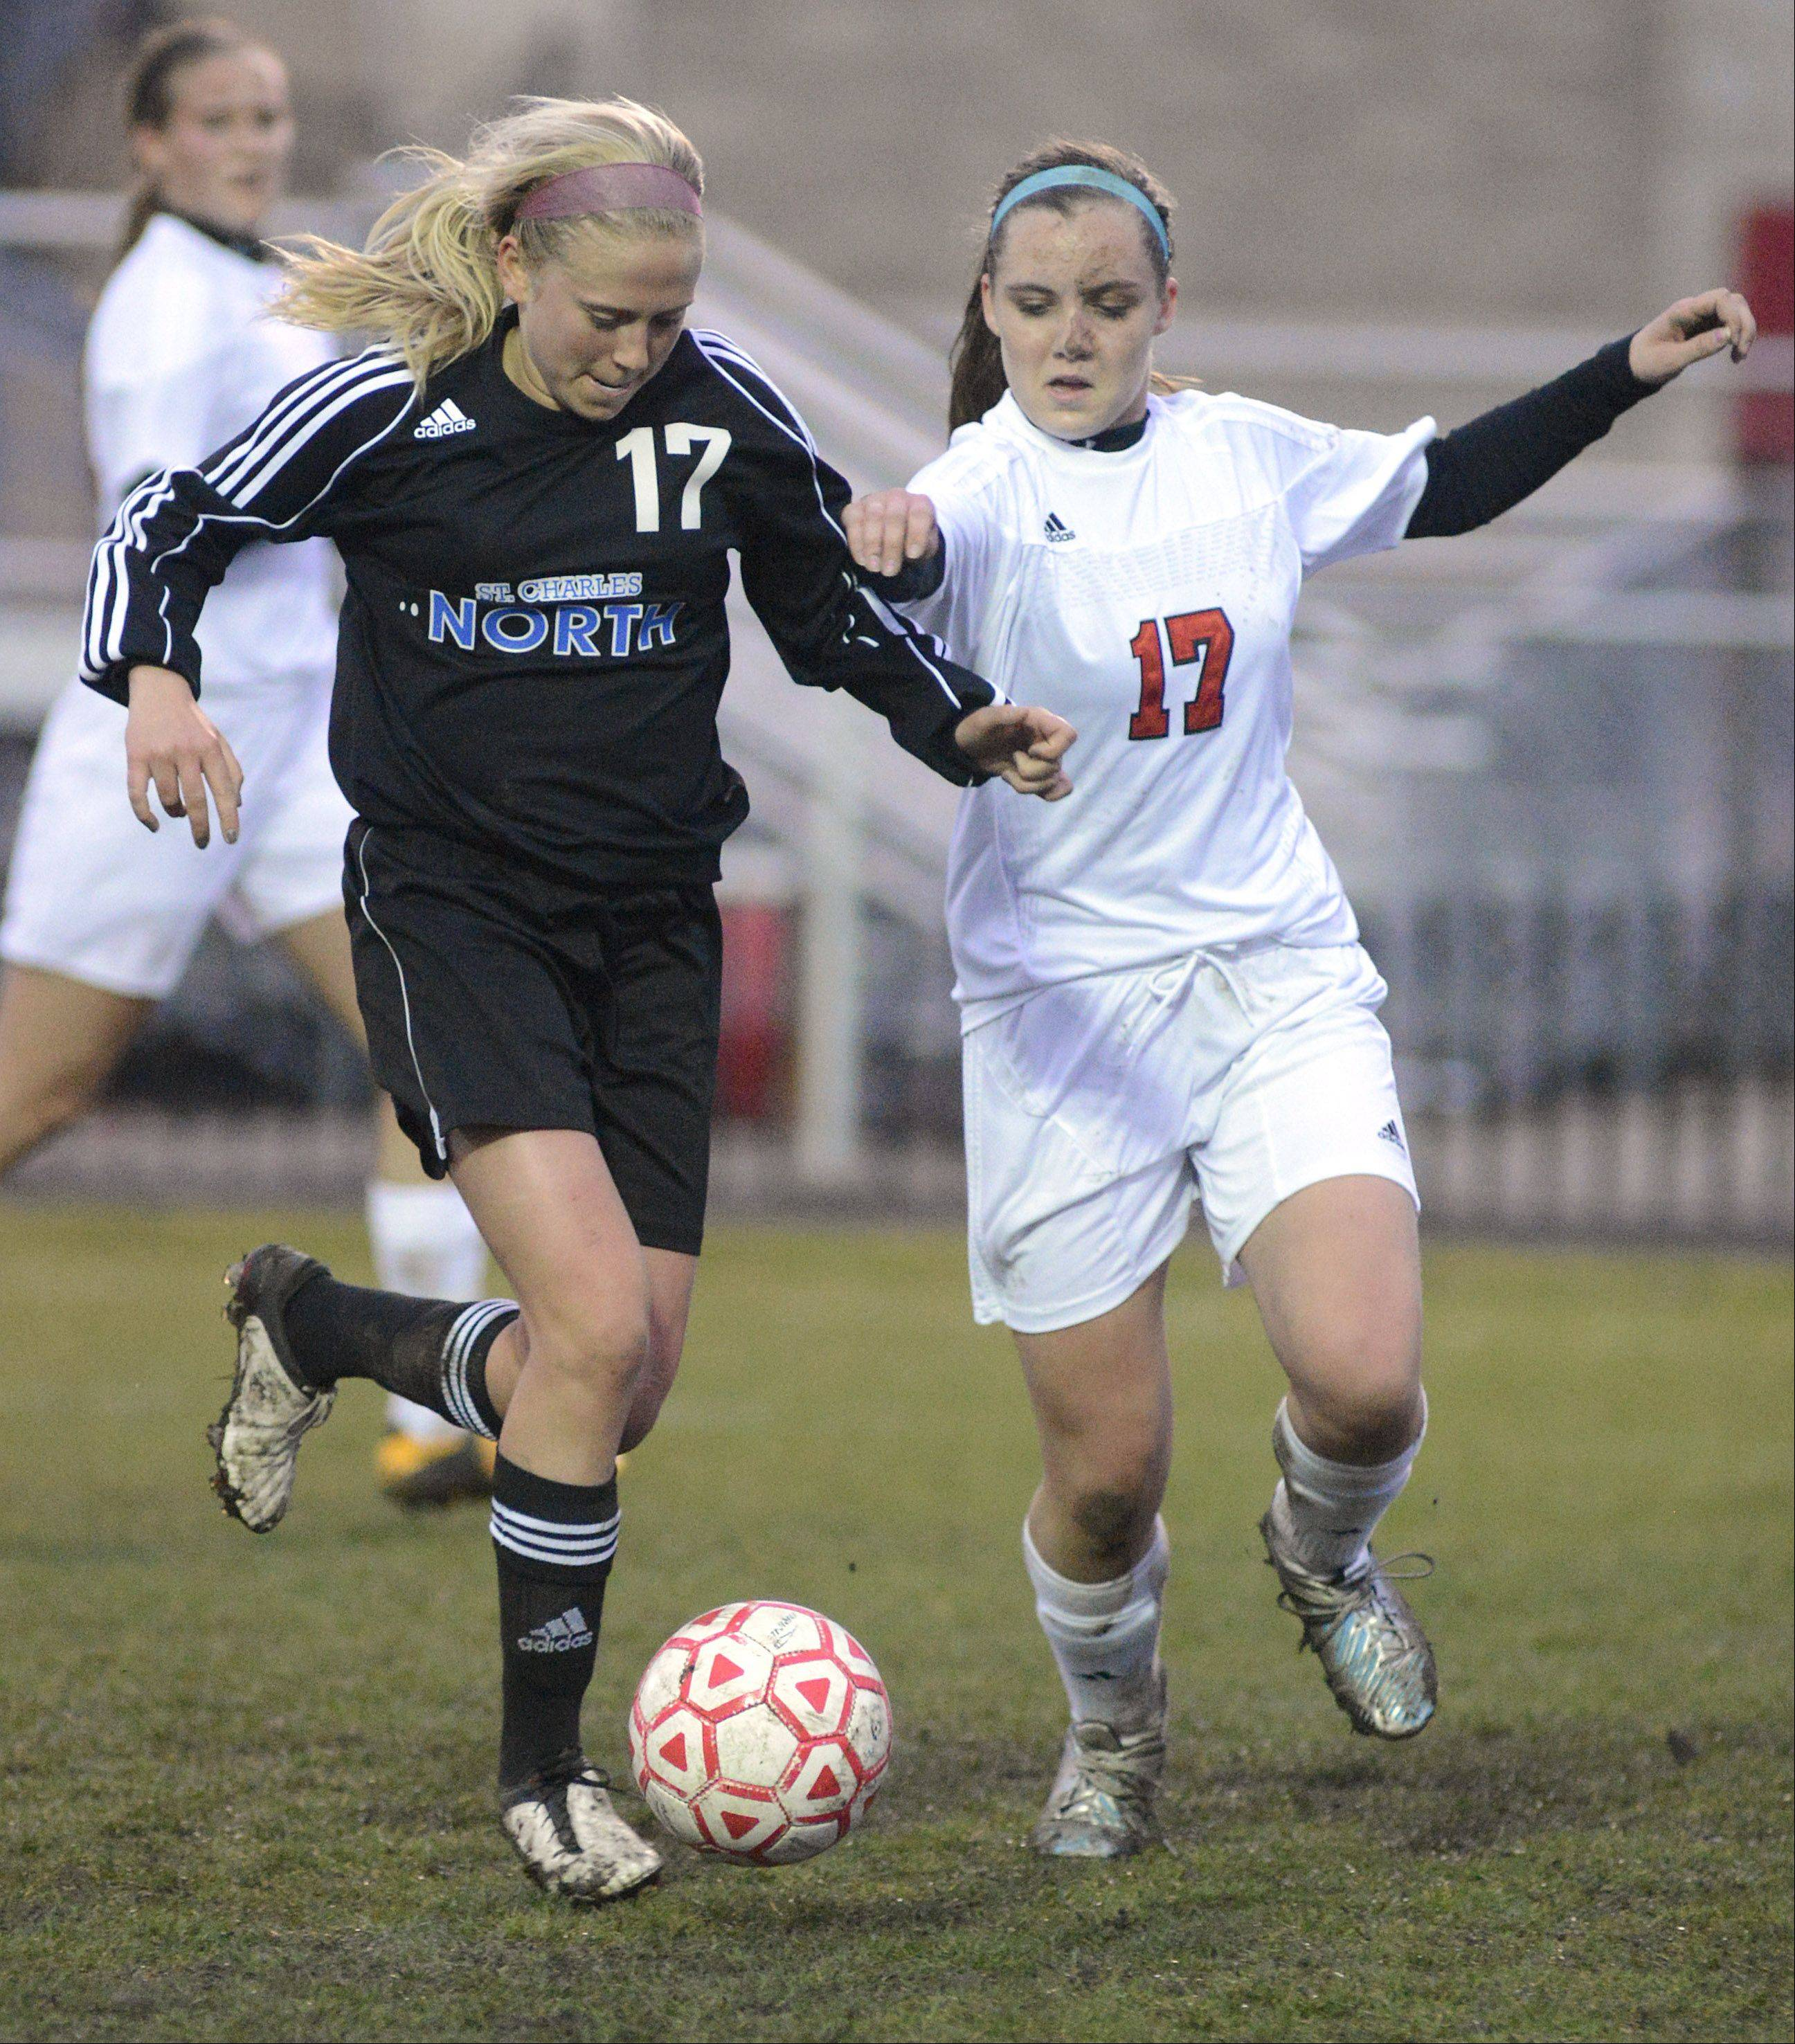 St. Charles North's Kelly Manski and Batavia's Alison Grimm battle for the ball in the first half on Thursday, April 11.